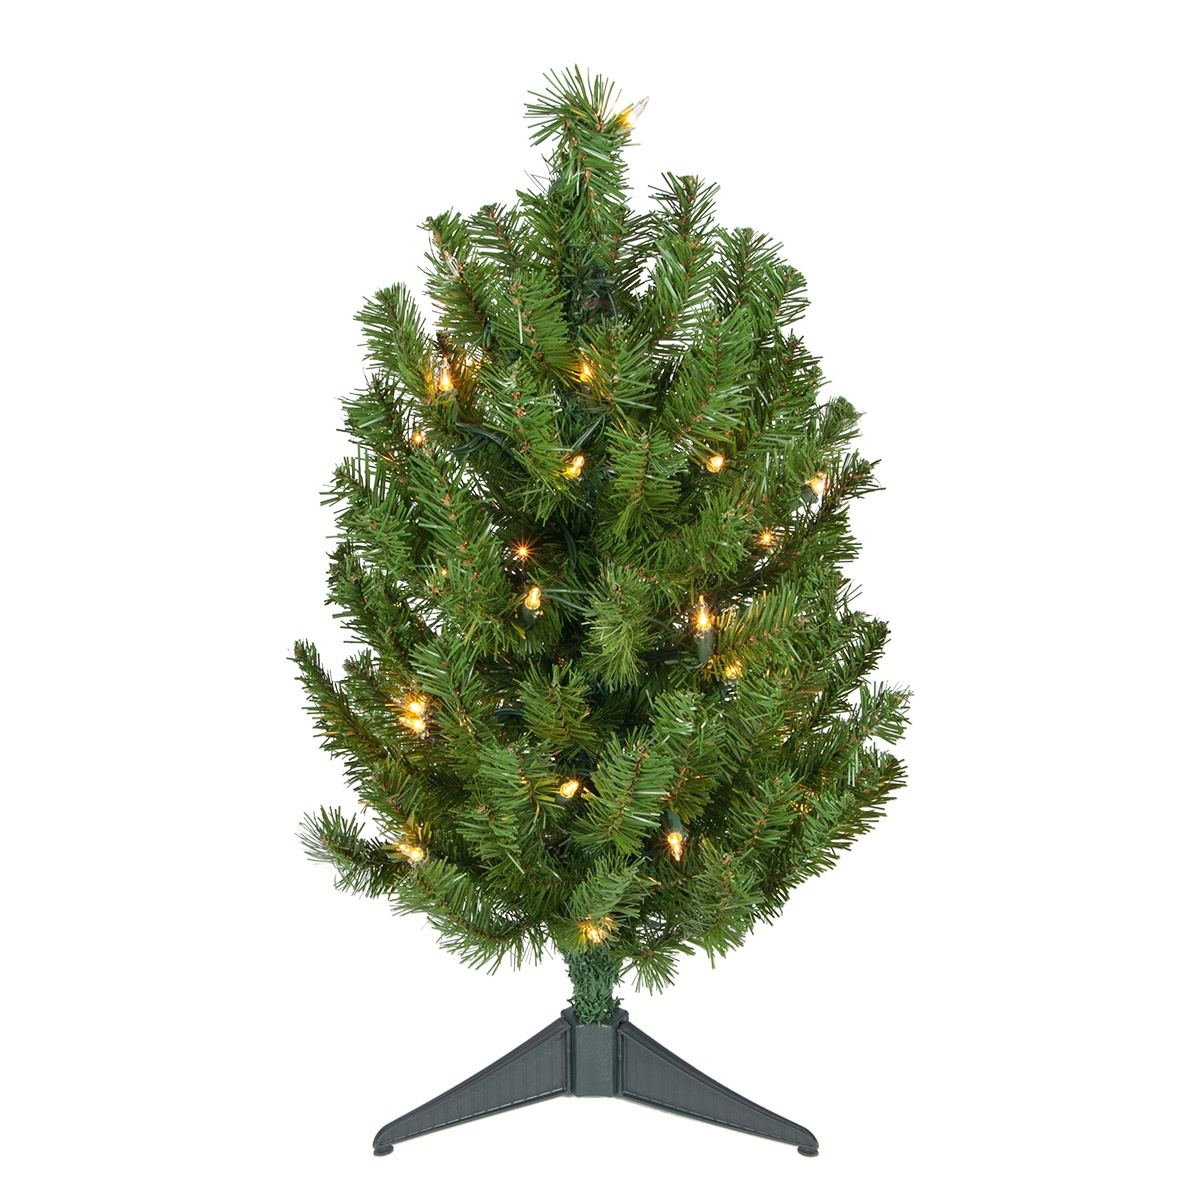 Artifical Christmas Tree Stands